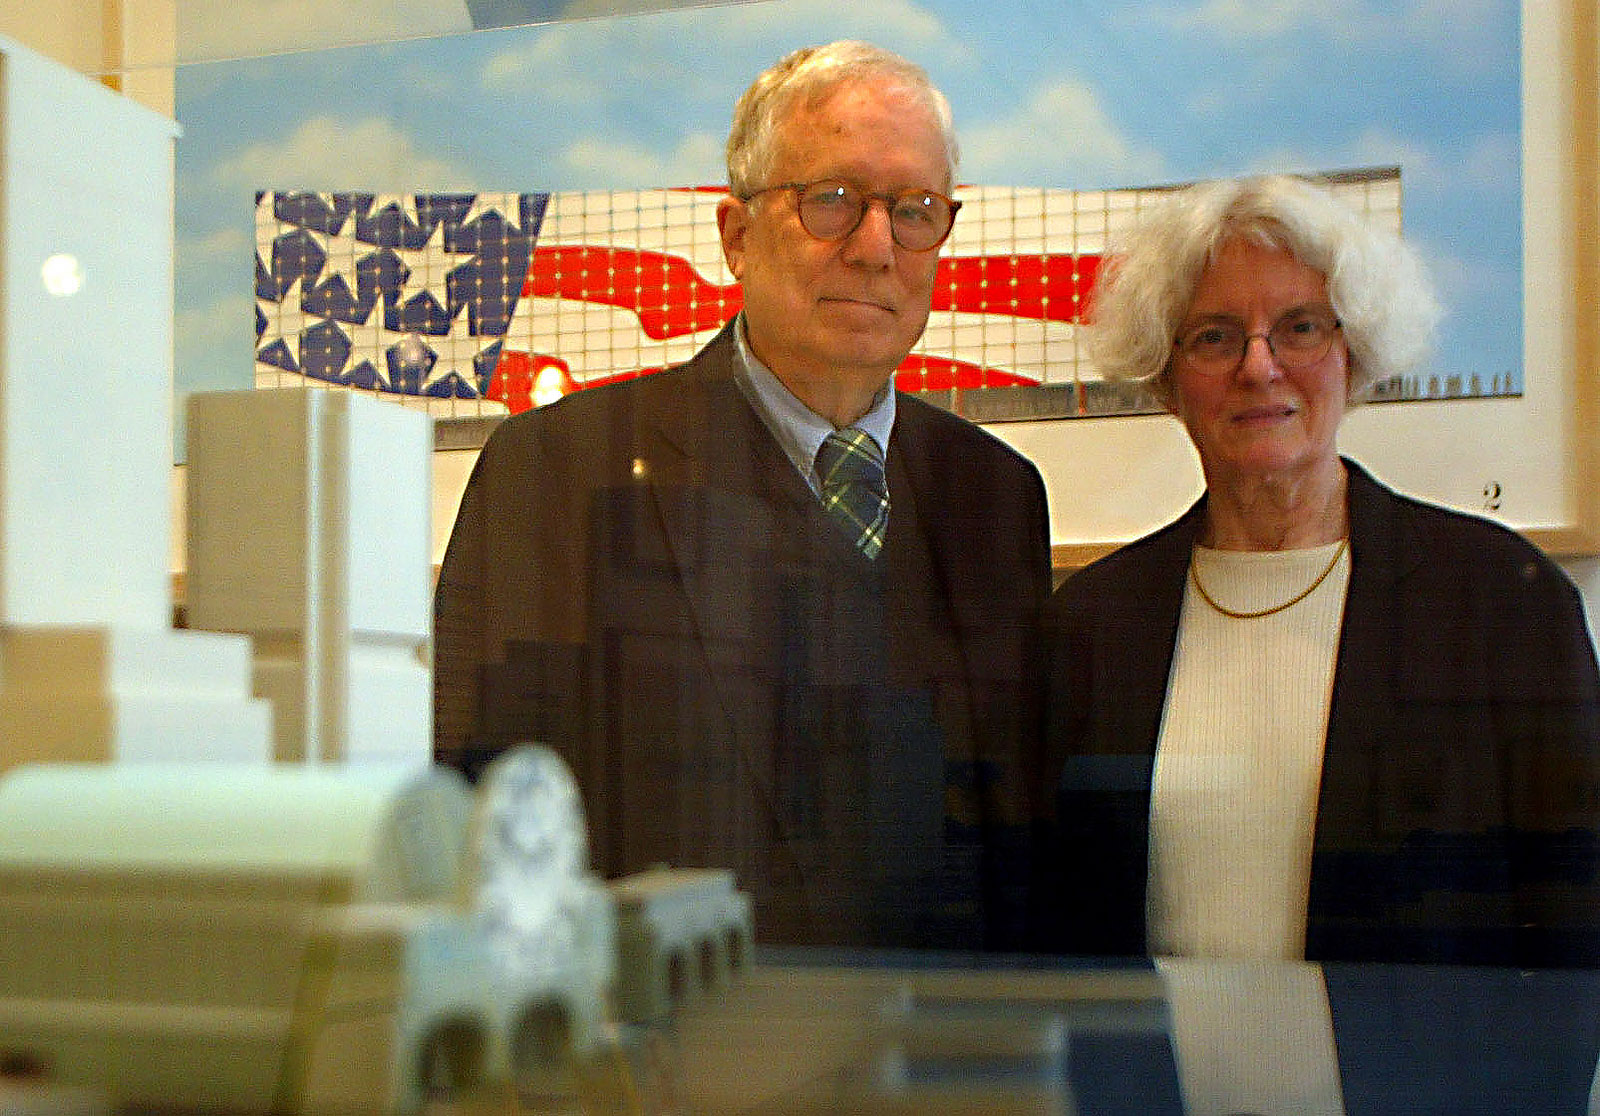 Architects Robert Venturi and Denise Scott Brown at the Museum of Contemporary Art, Los Angeles, for a 2002 show of their work